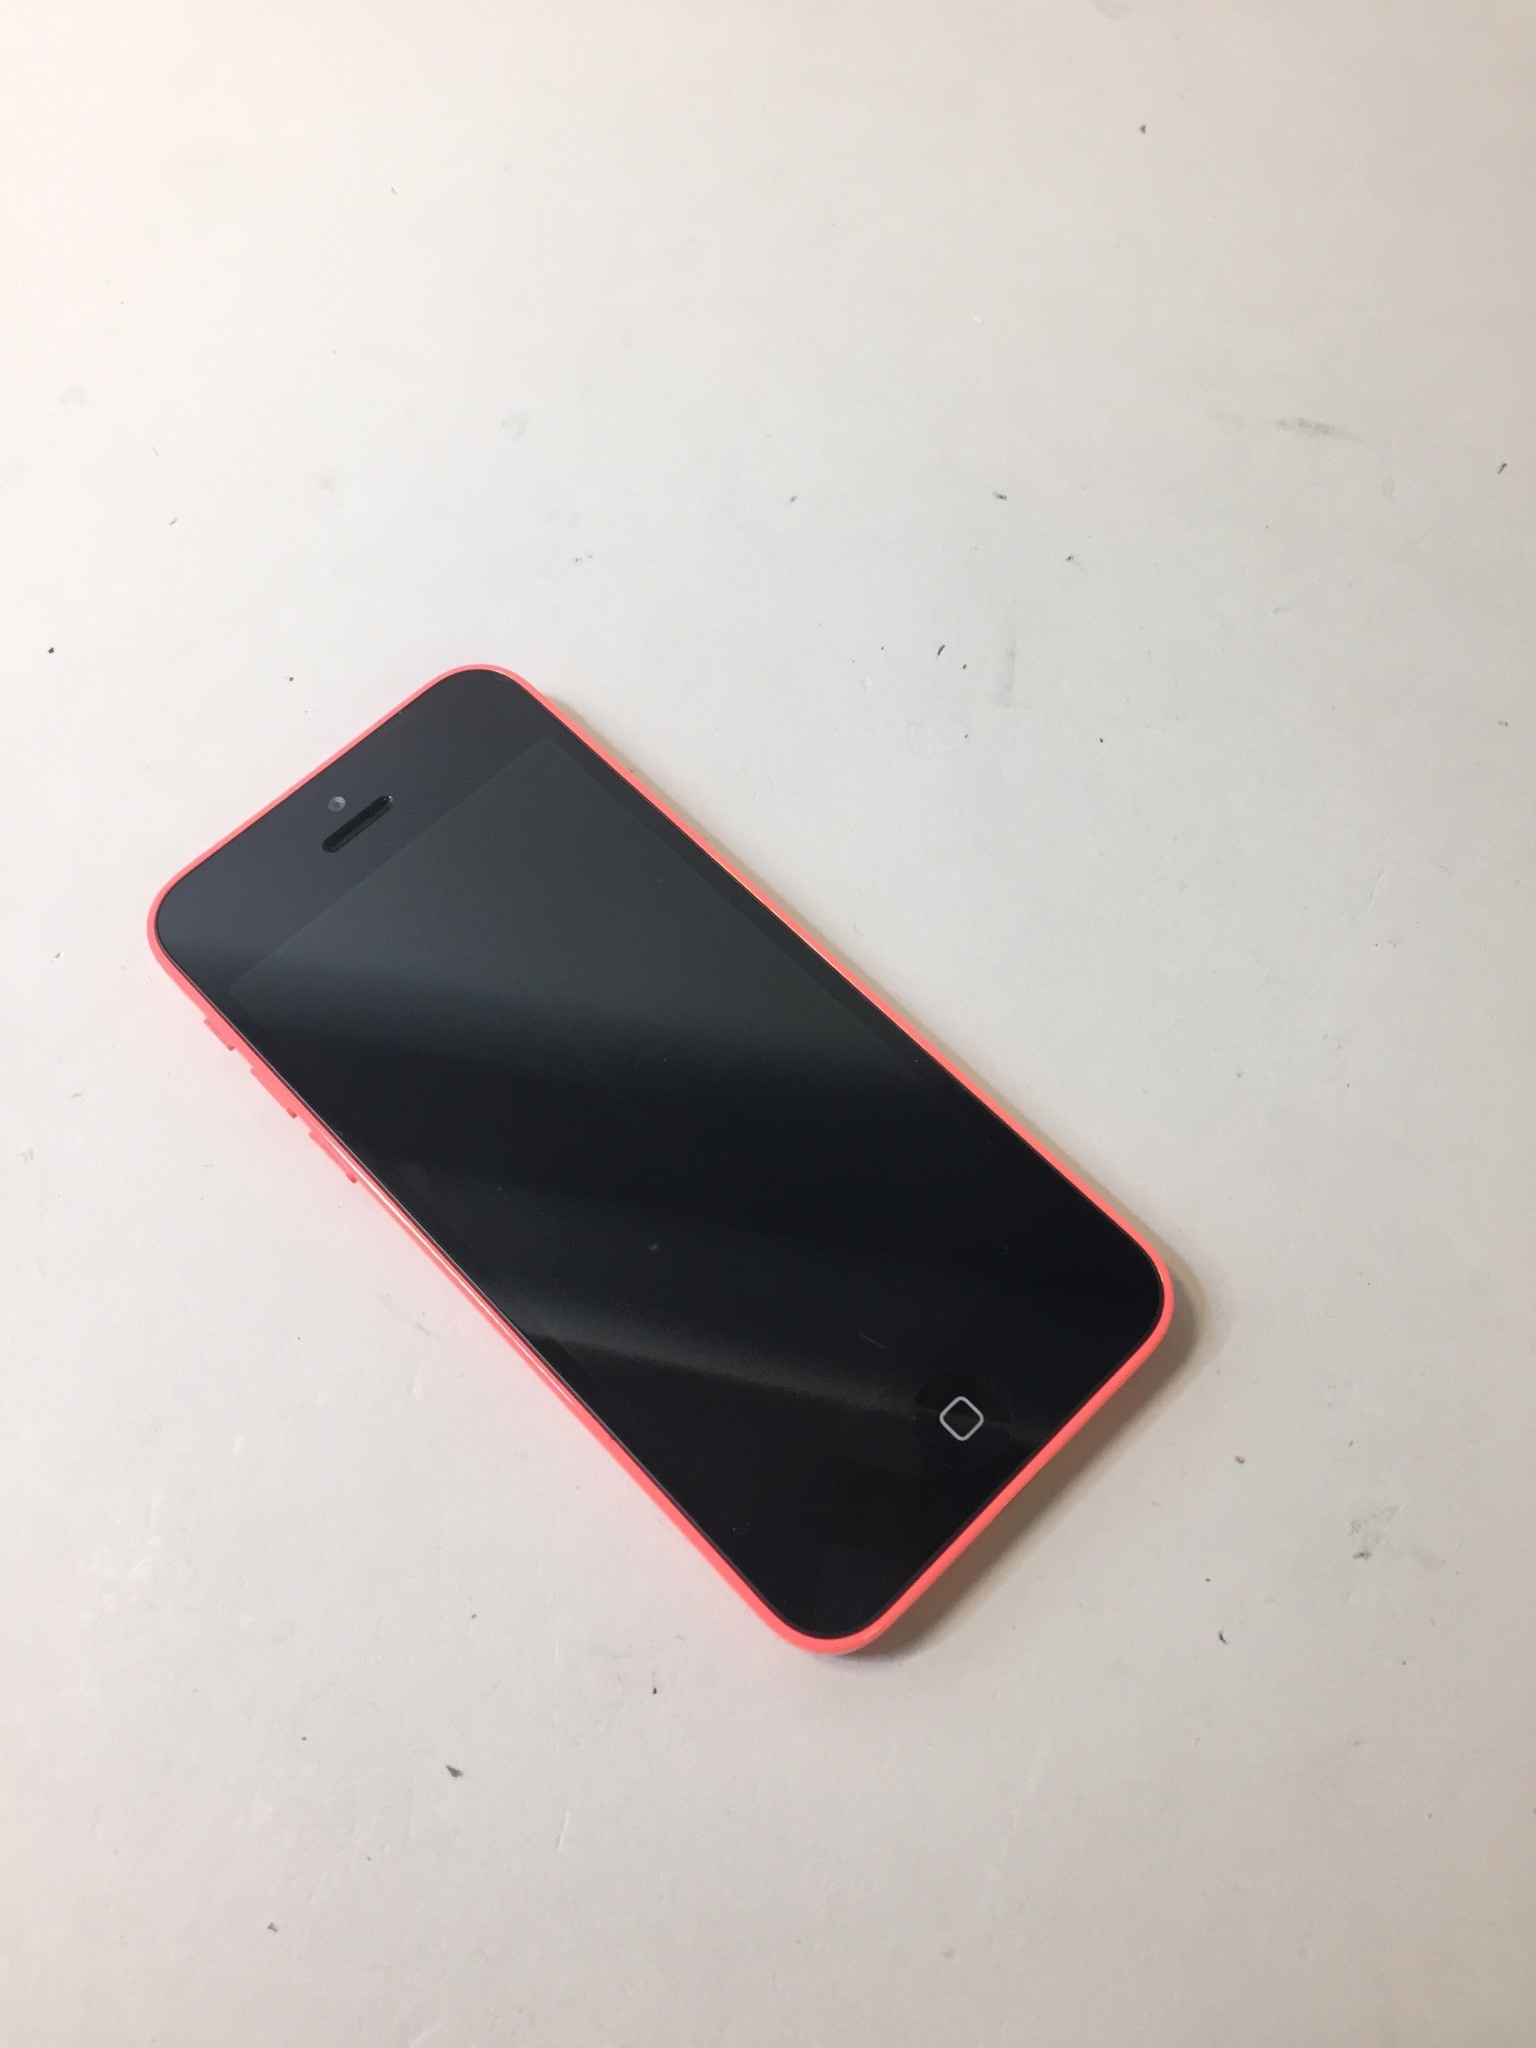 AT&T Only - iPhone 5c - 16GB - Pink - Fair